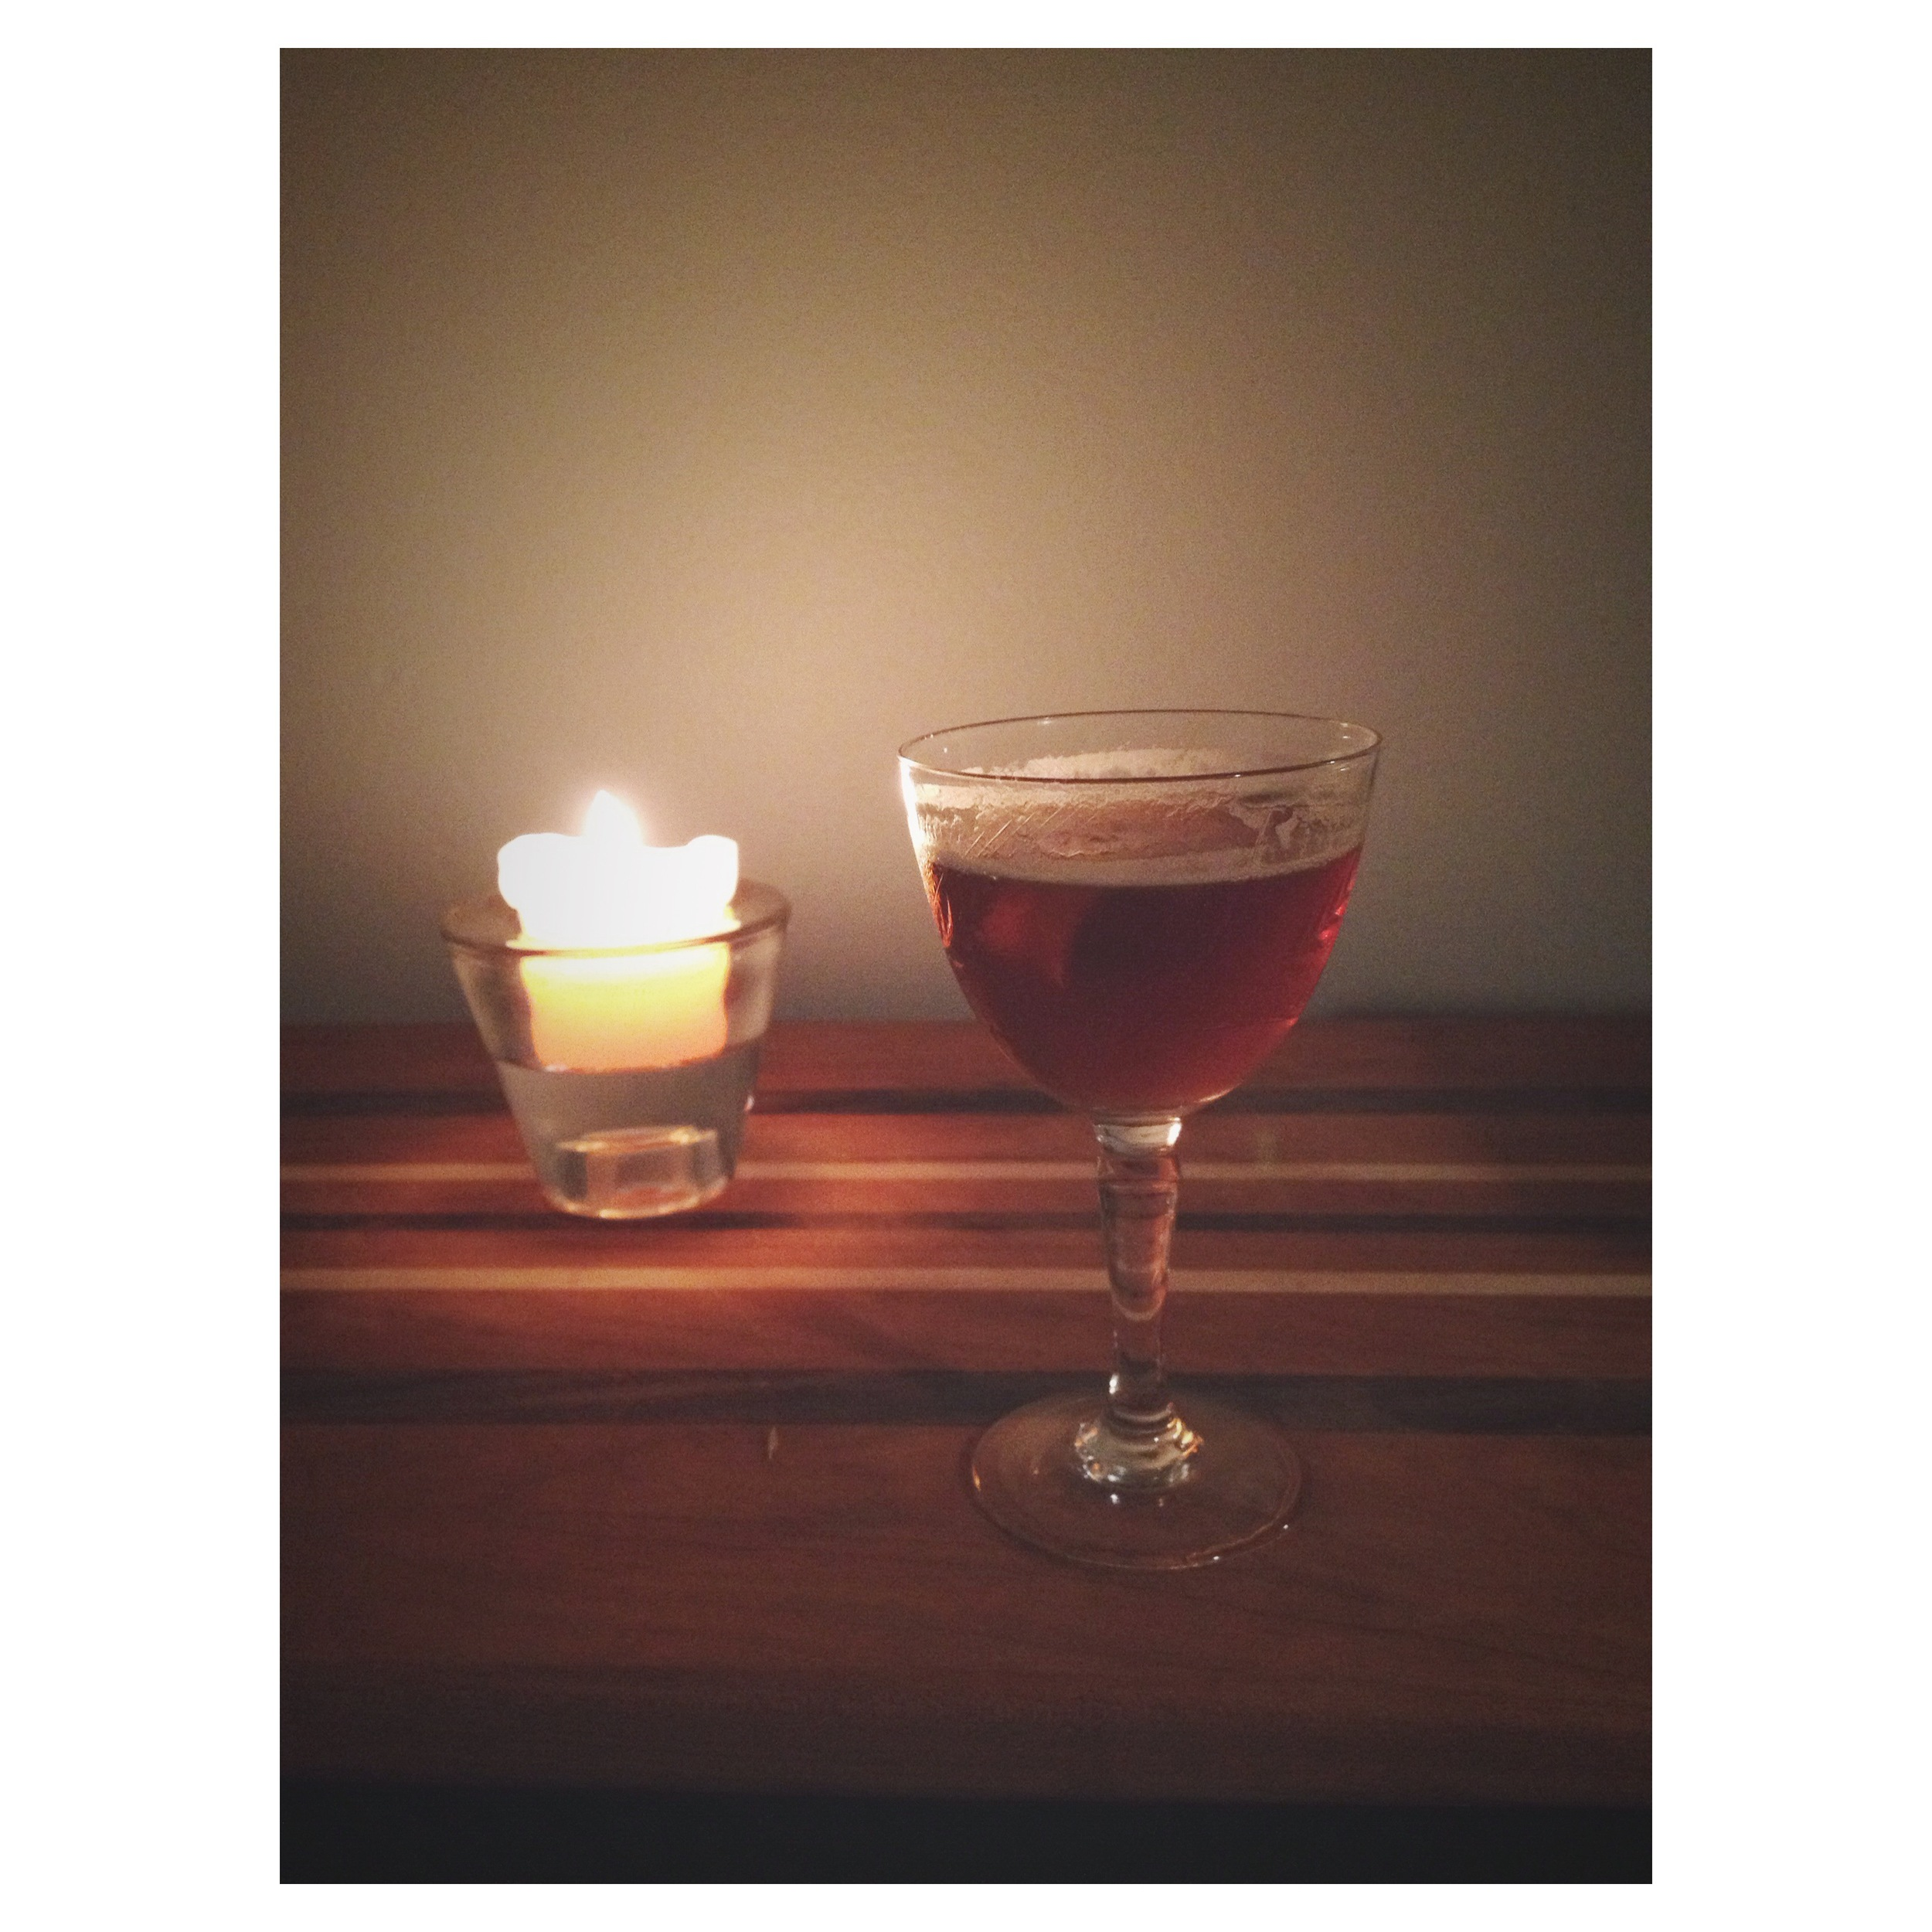 glass in candlelight.jpg